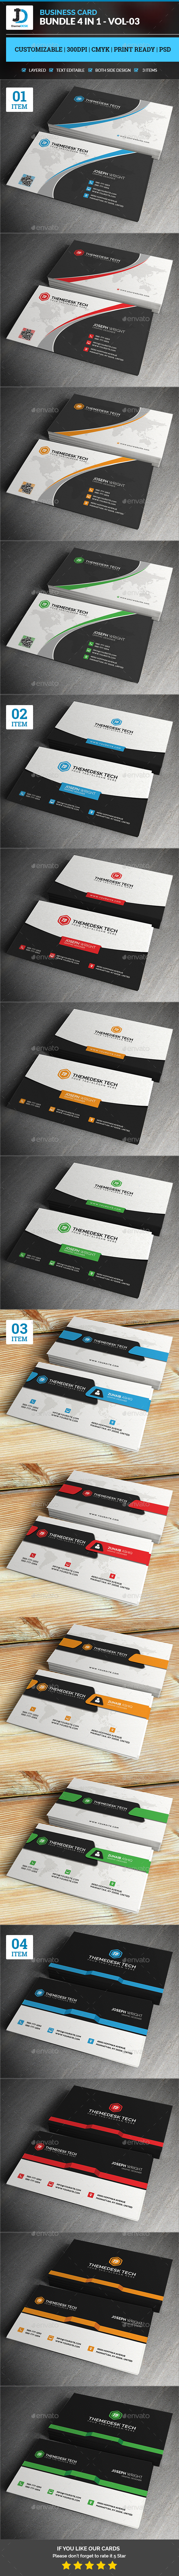 Business Card Bundle 4 in 1 - Vol-3 - Corporate Business Cards